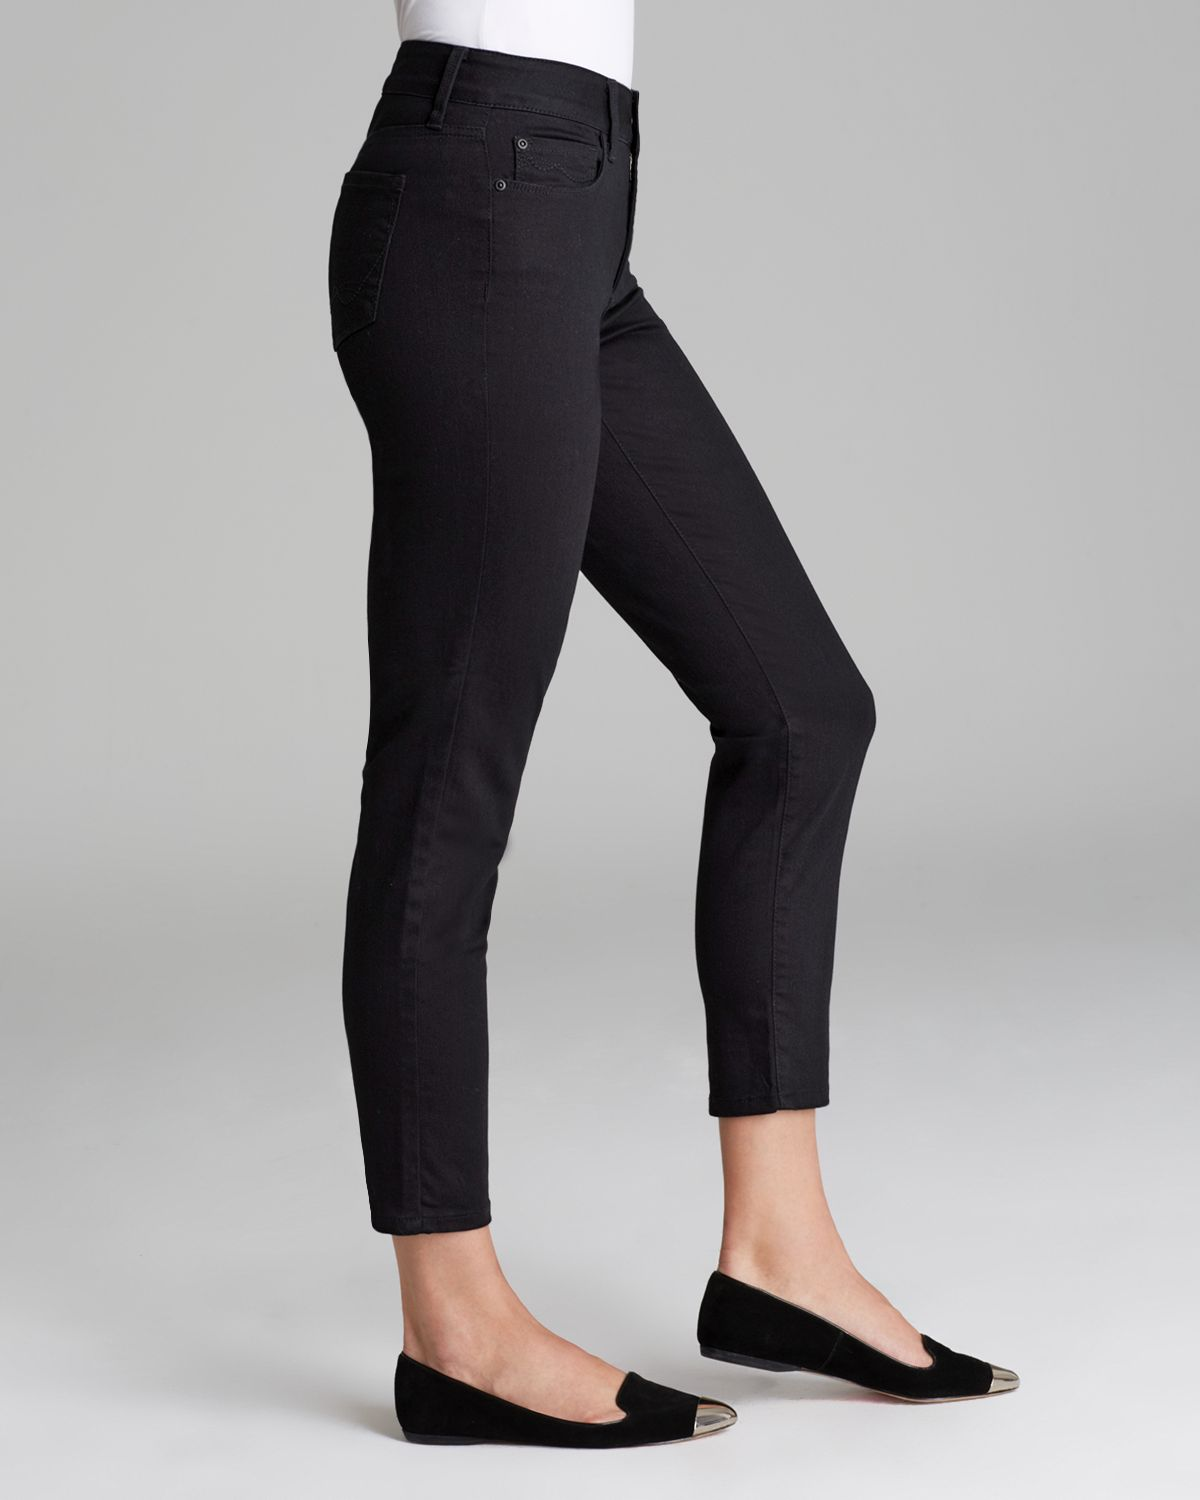 Nydj Alisha Fitted Ankle Jeans In Black in Black | Lyst